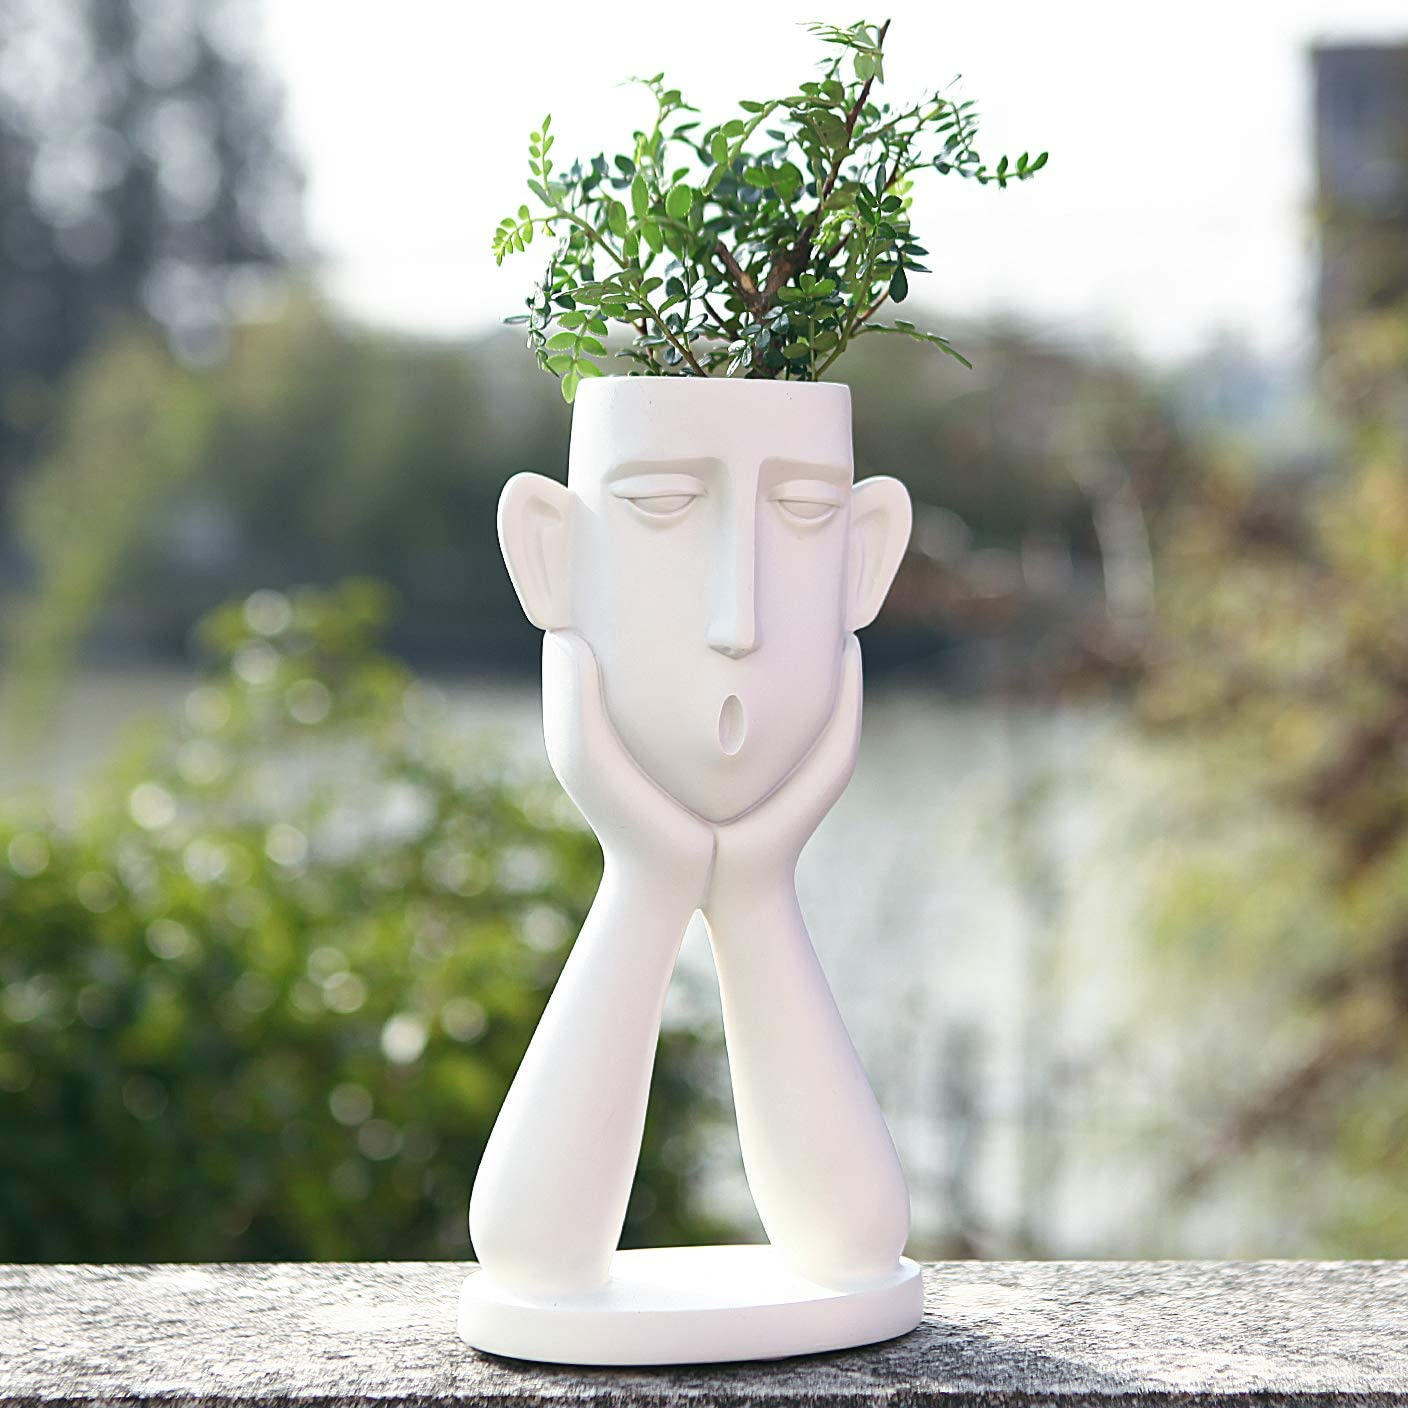 FROZZUR Human Face Shaped Flower Pot, Tall White Modern Head Planter, Irregular Garden Pot for Indoor and Outdoor Decorative Plants, Boy Planter Pots with Drainage Holes for Succulent Plants